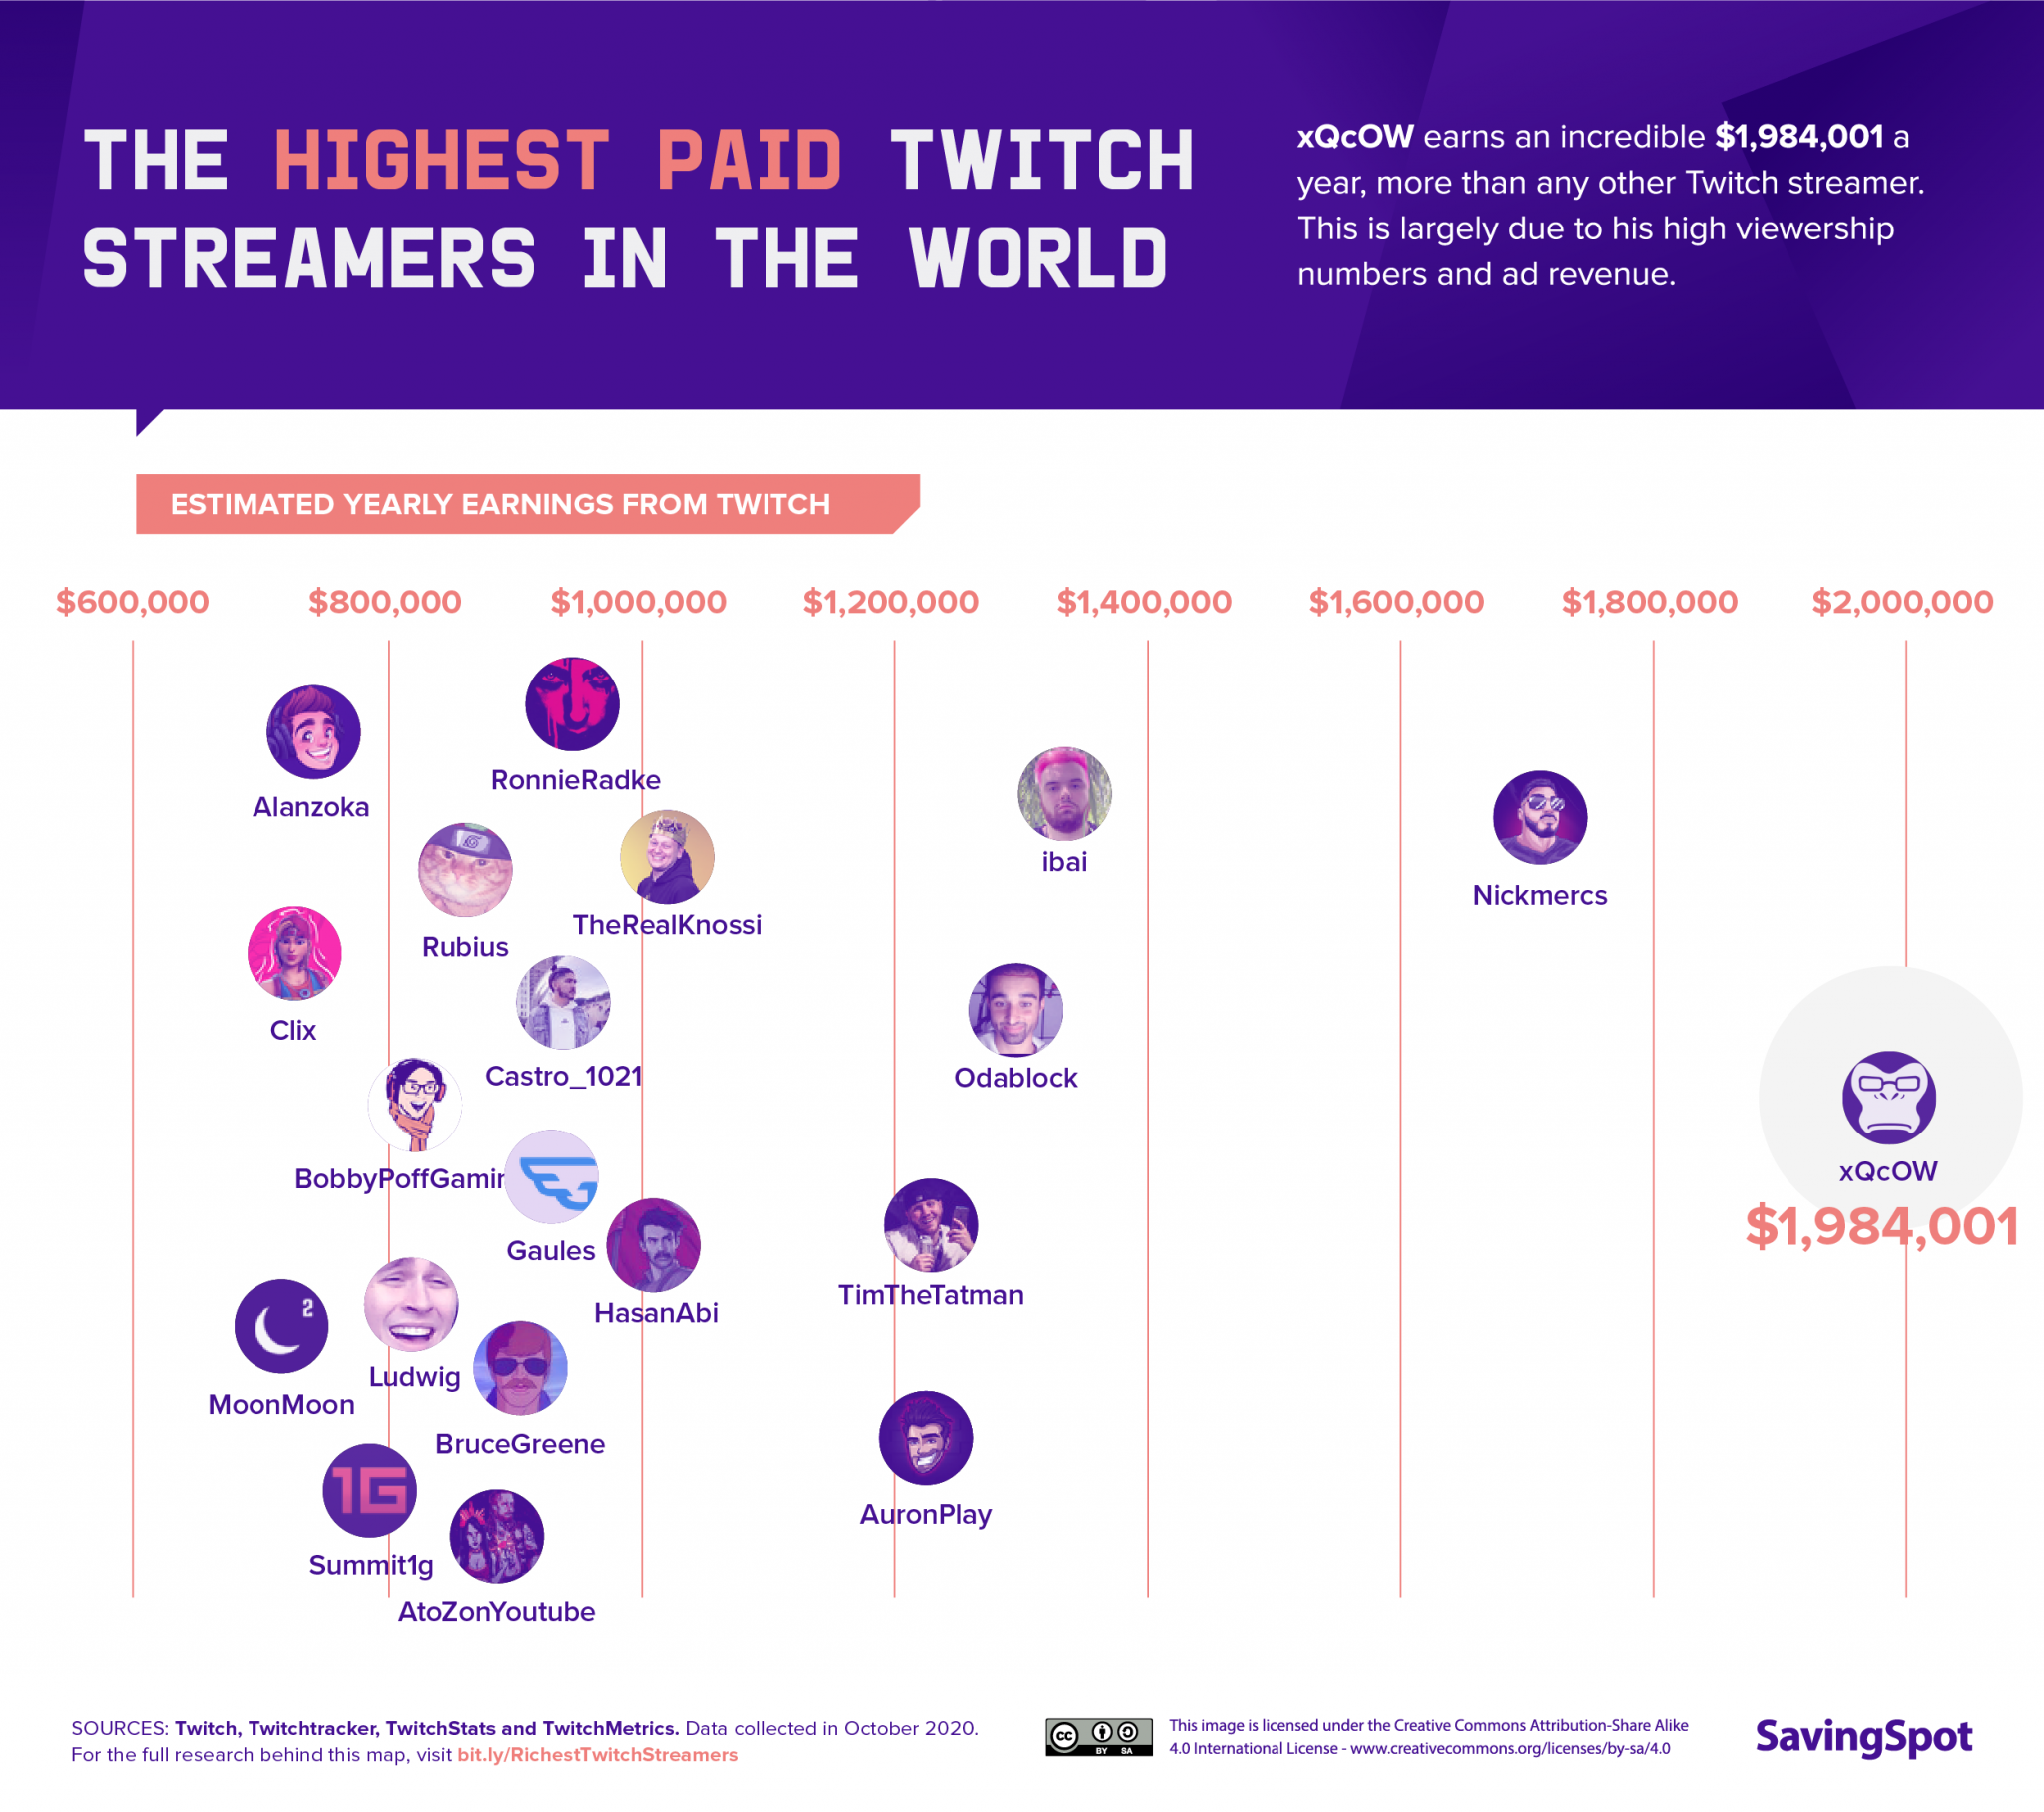 Highest paid Twitch streamers in the world.